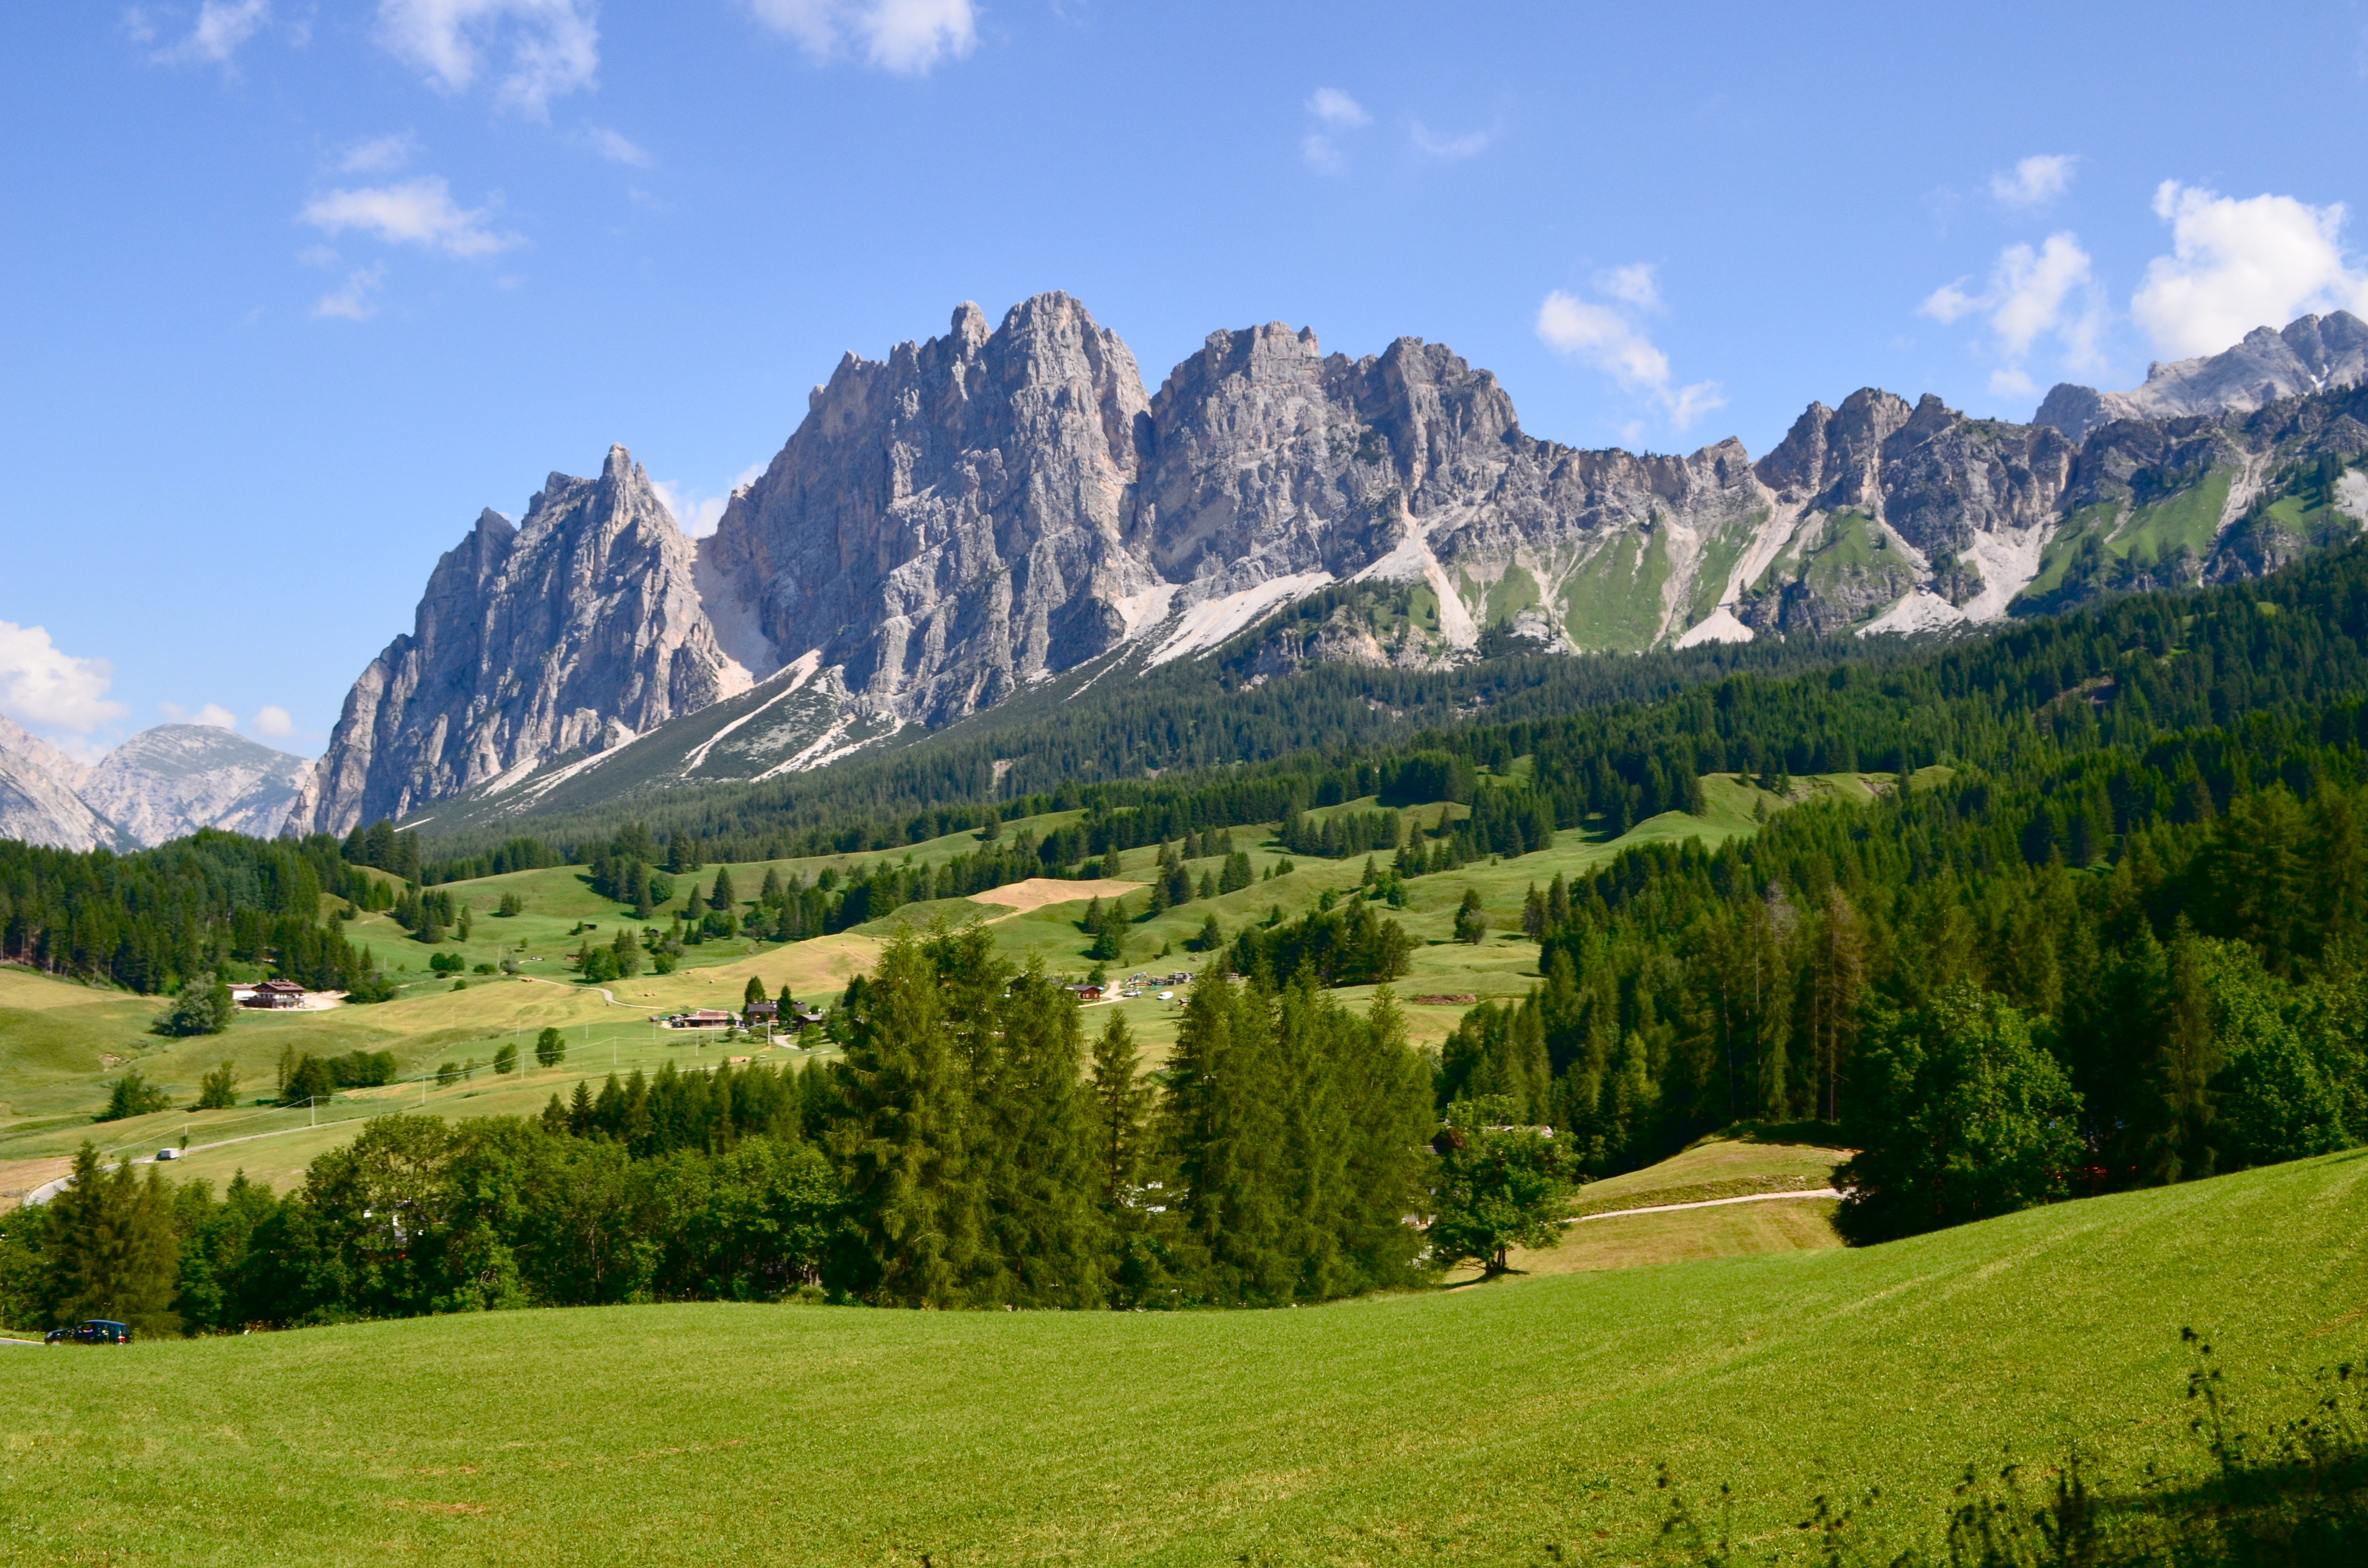 Cortina d 39 ampezzo vip place on dolomites for summer for Best view of dolomites